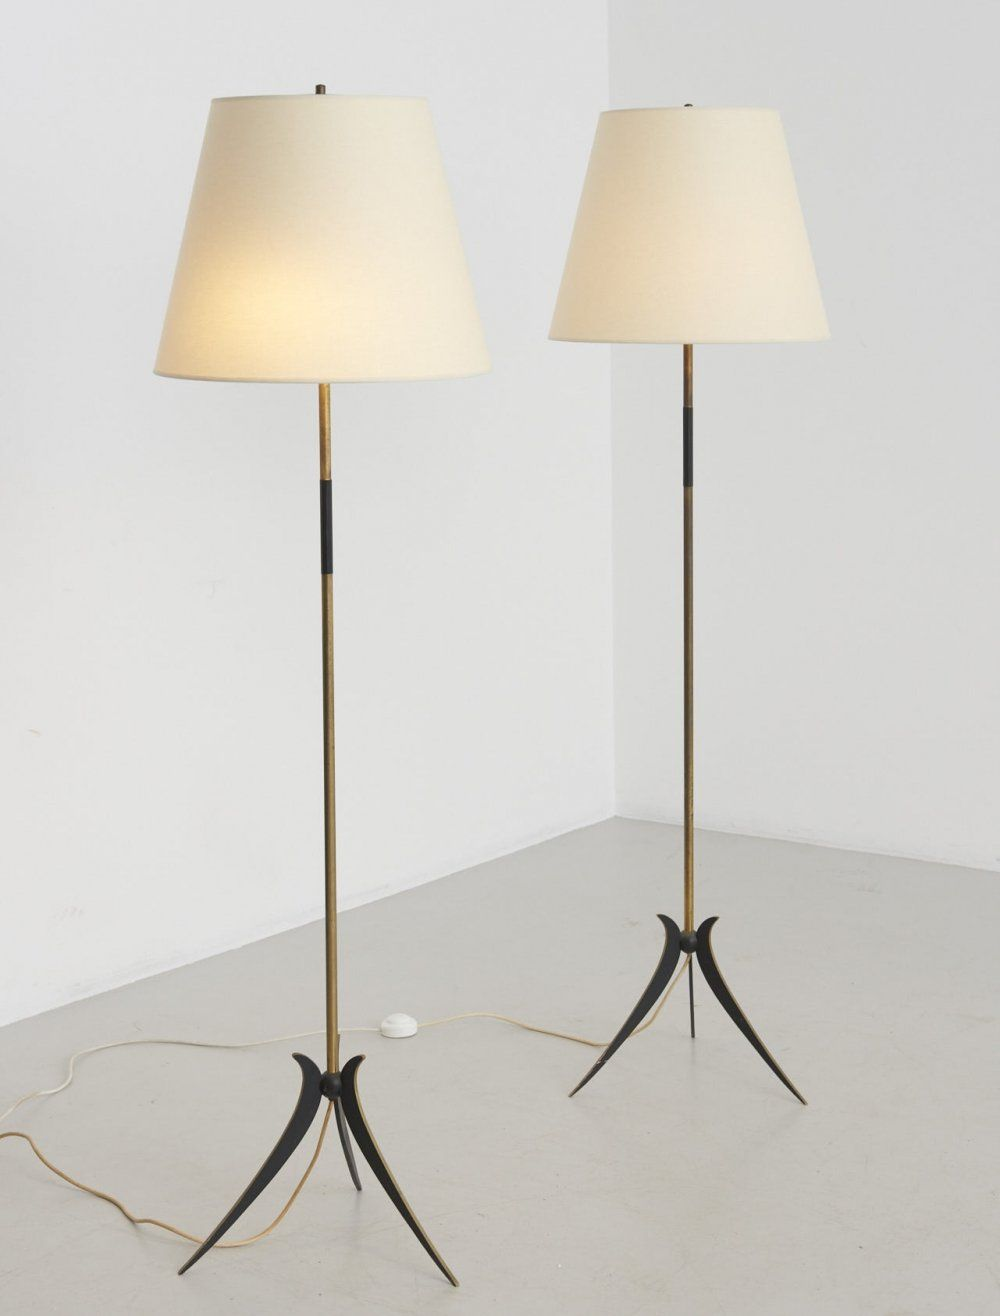 For Sale Pair Of Italian Floor Lamps 1950 S In 2020 Italian Floor Lamp Lamp Floor Lamp